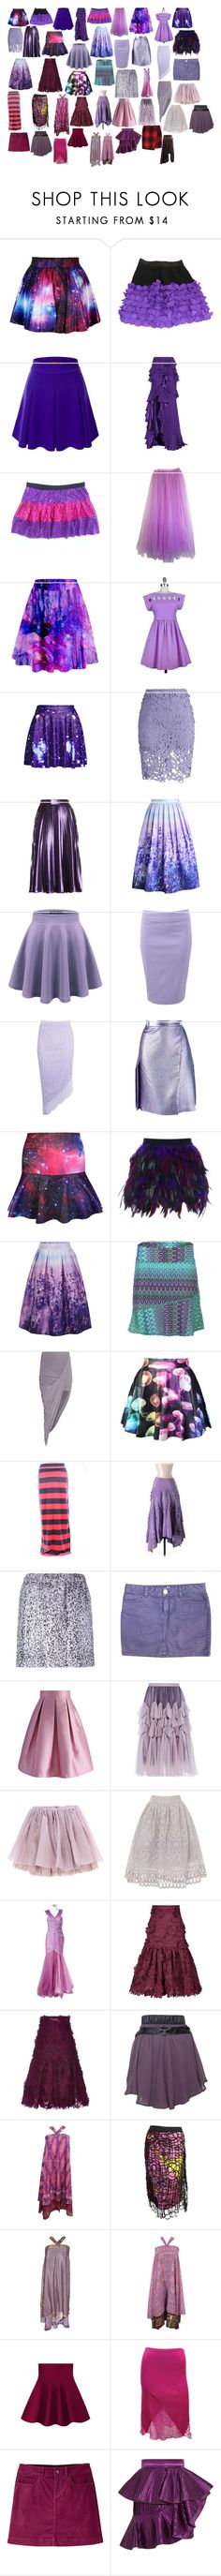 """Skirts 11"" by spellcasters ❤ liked on Polyvore featuring Sonia by Sonia Rykiel, Doublju, Roberto Cavalli, WithChic, Chicwish, Gucci, Avenue Montaigne, Boohoo, Marco de Vincenzo and prAna"